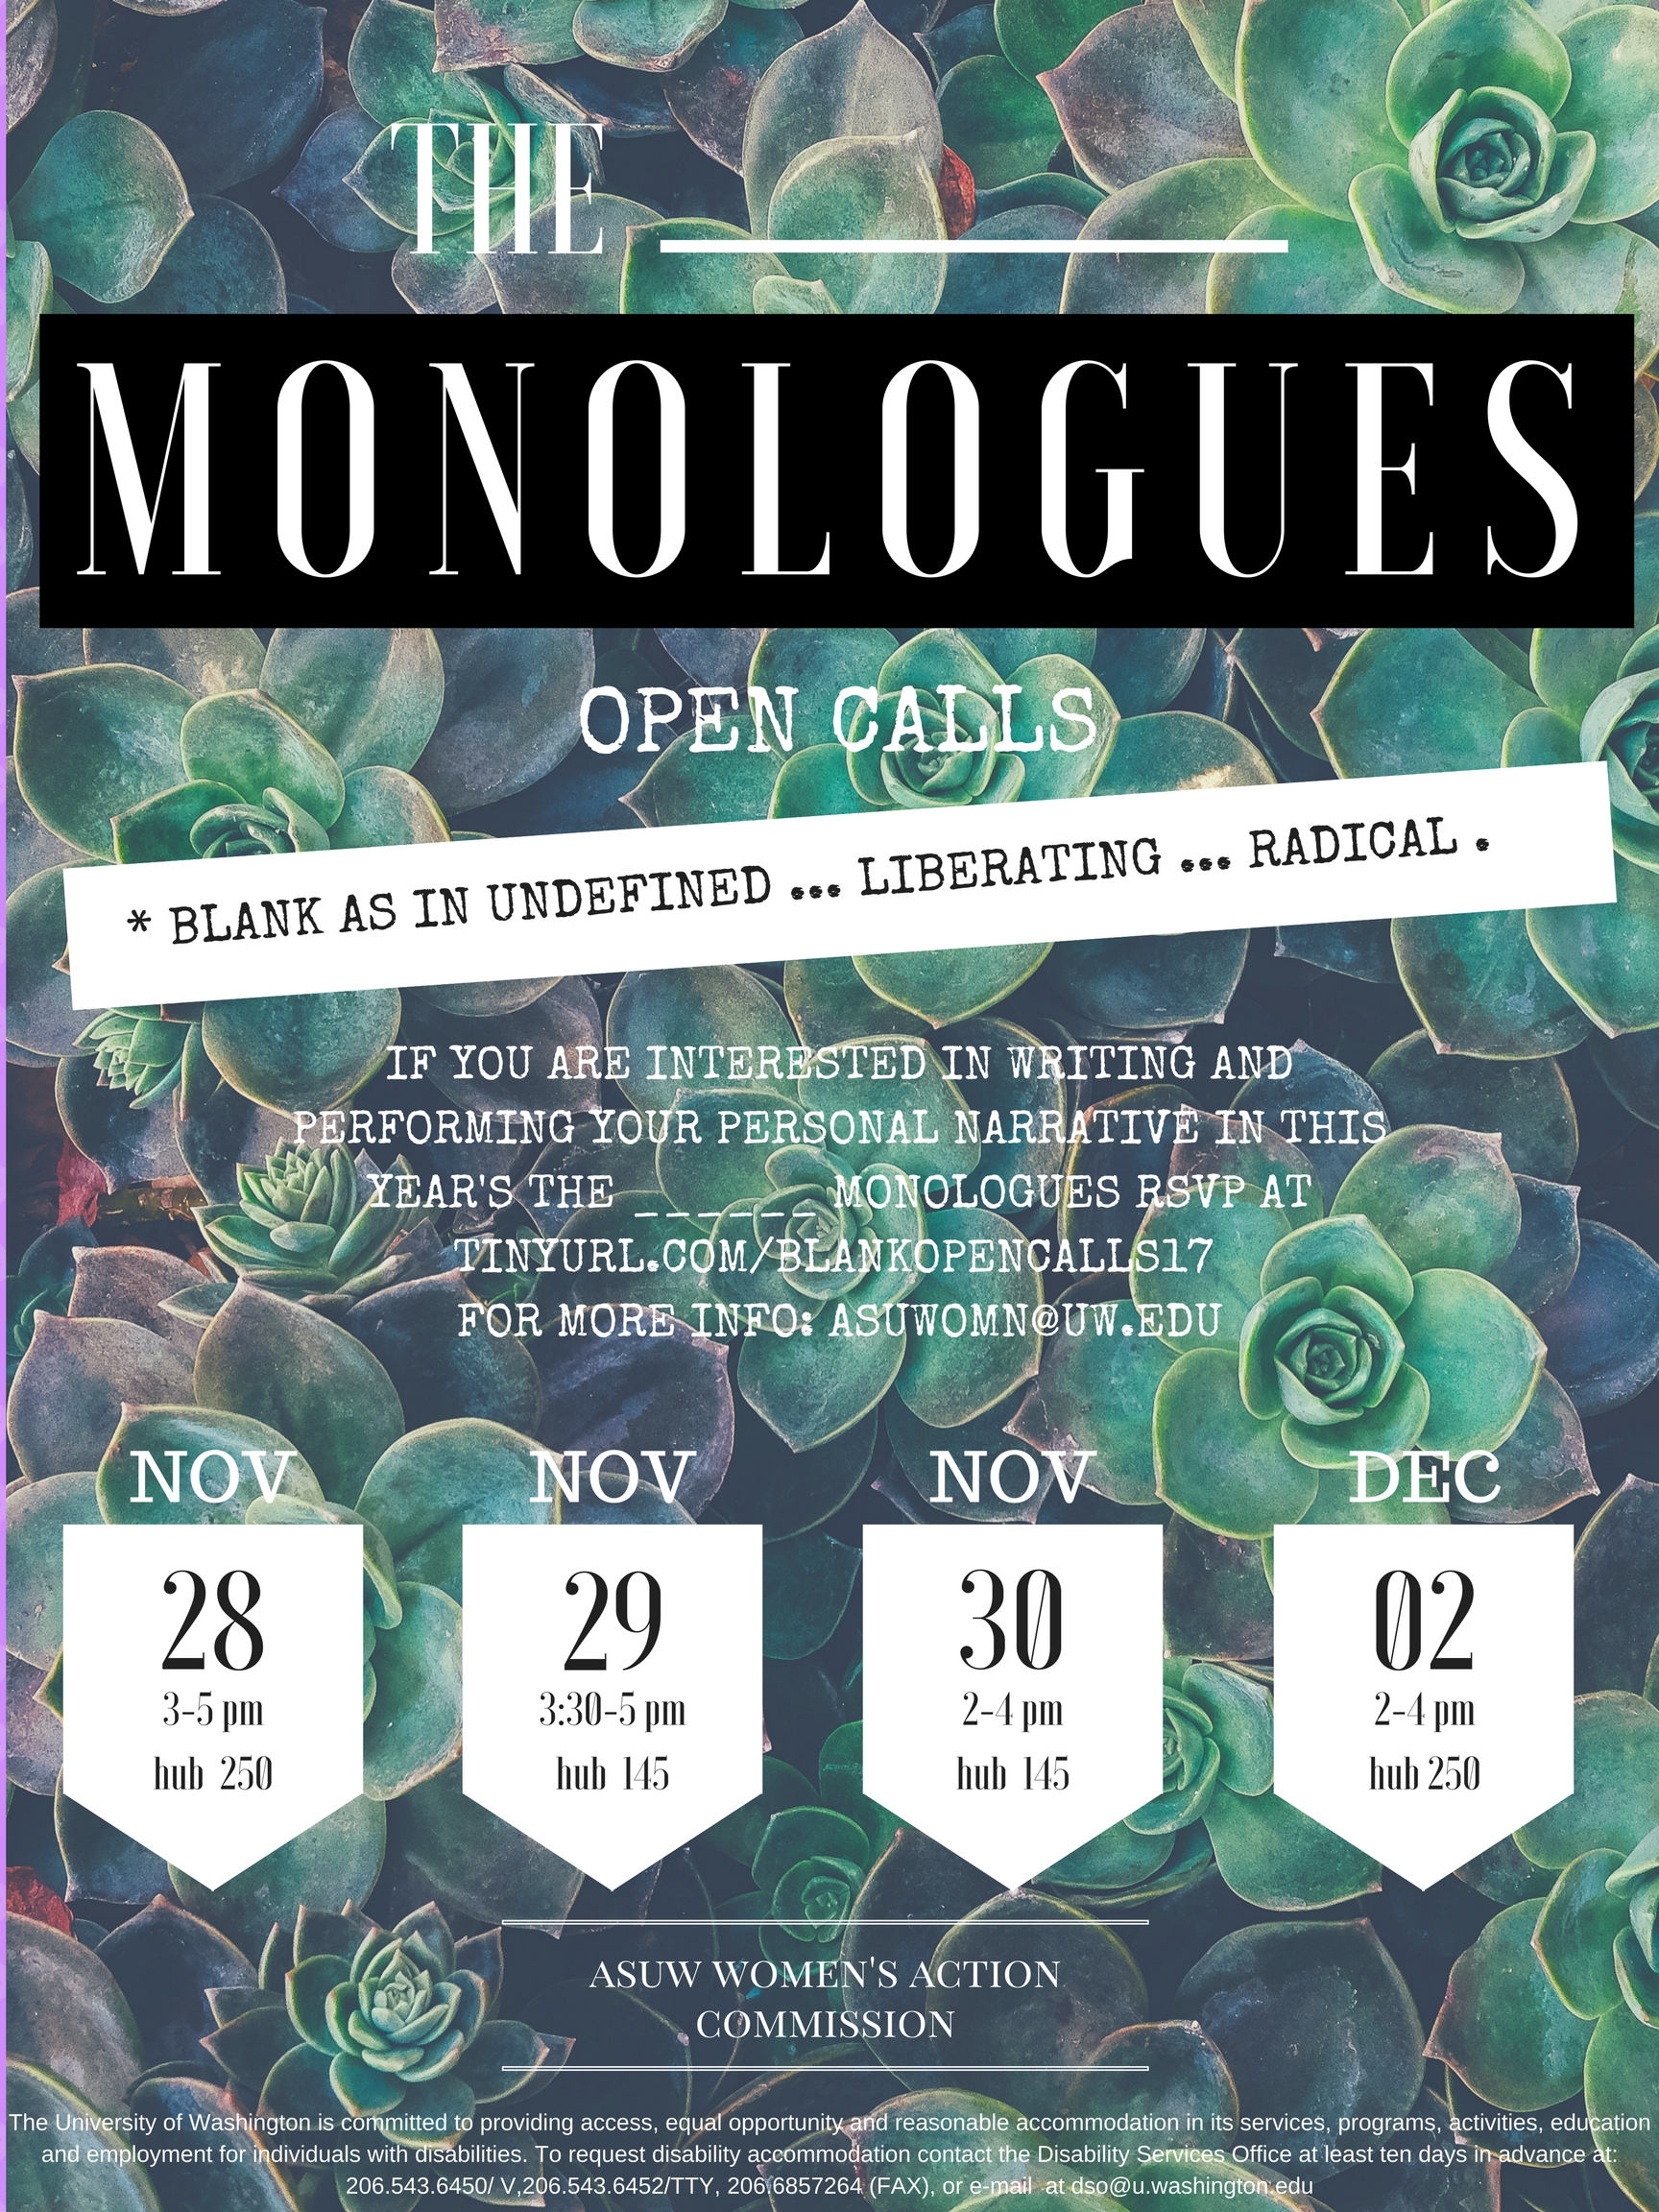 THE ____MONOLOGUES